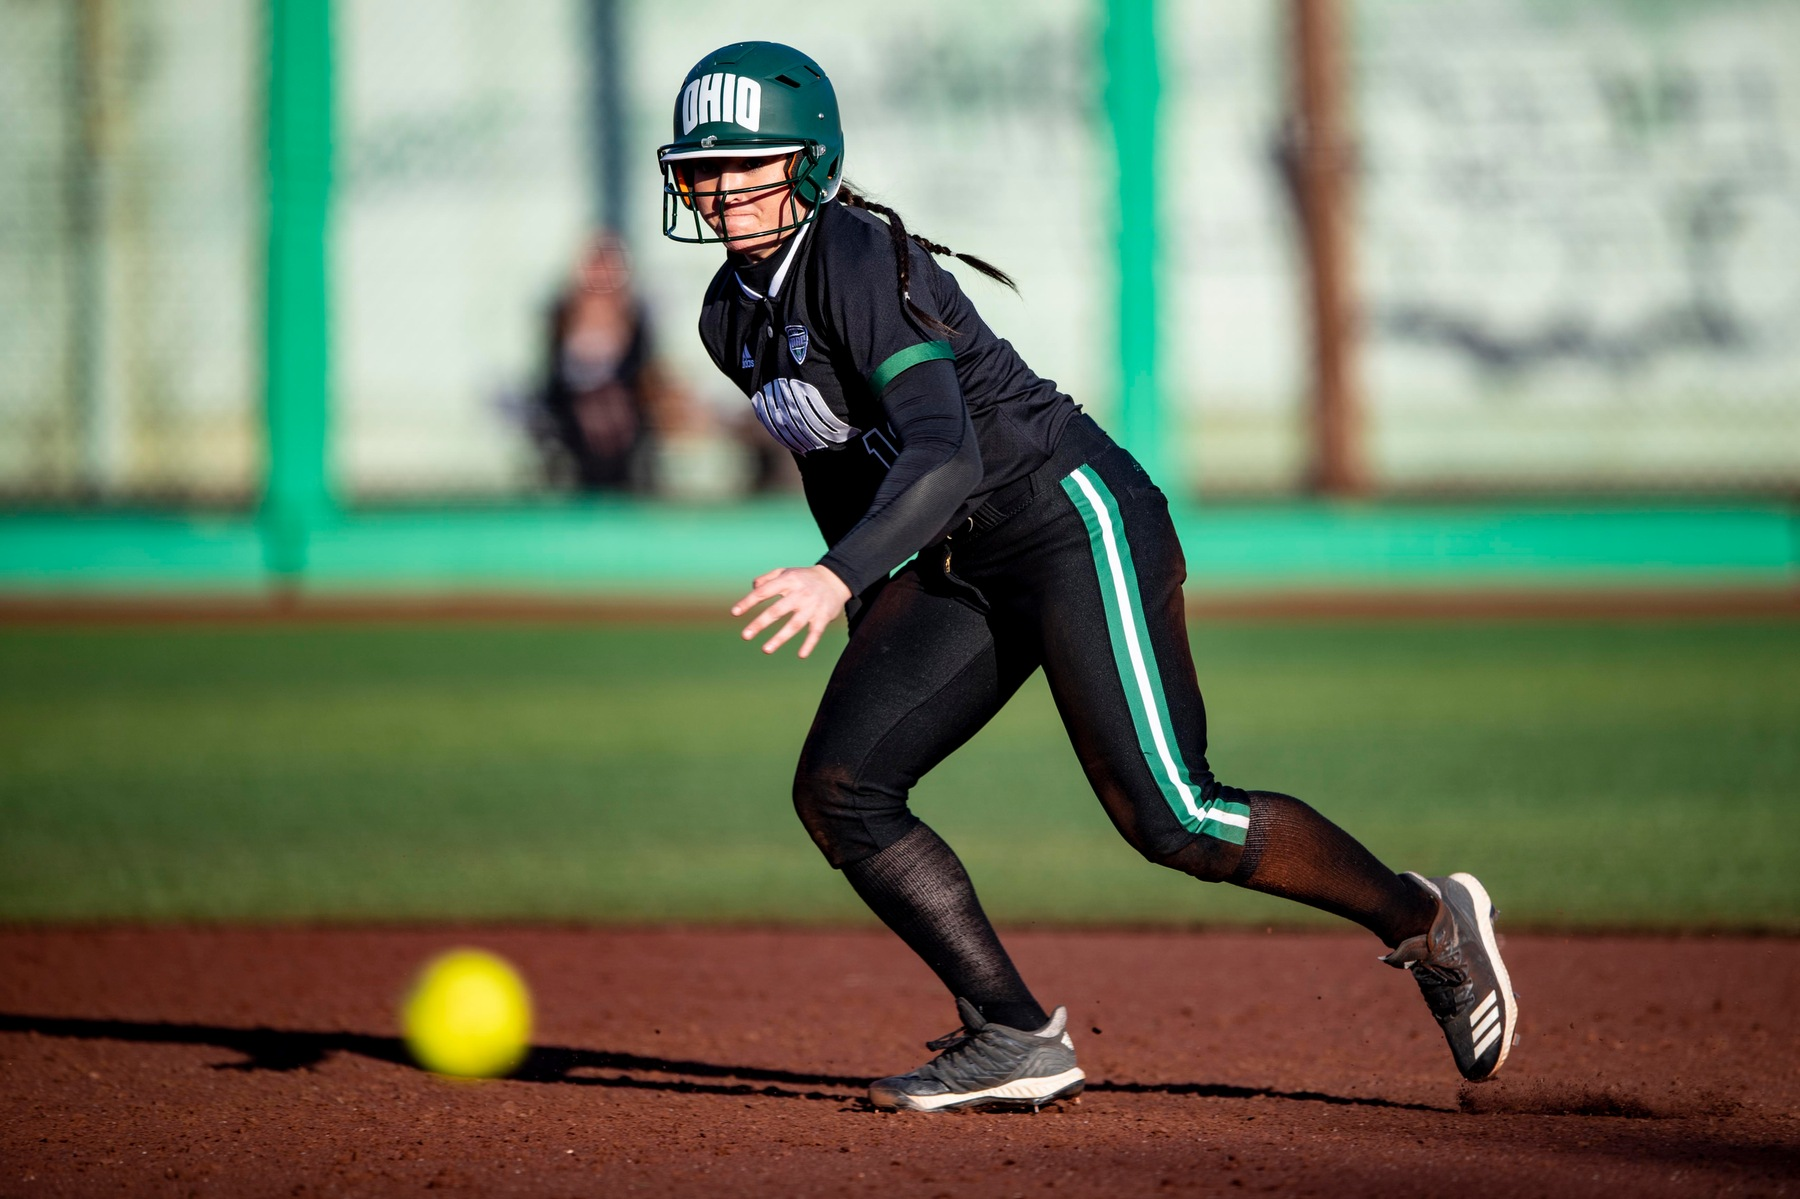 Ohio Softball Concludes Thrilling Day at Duke/N.C. State Invitational with Three Wins